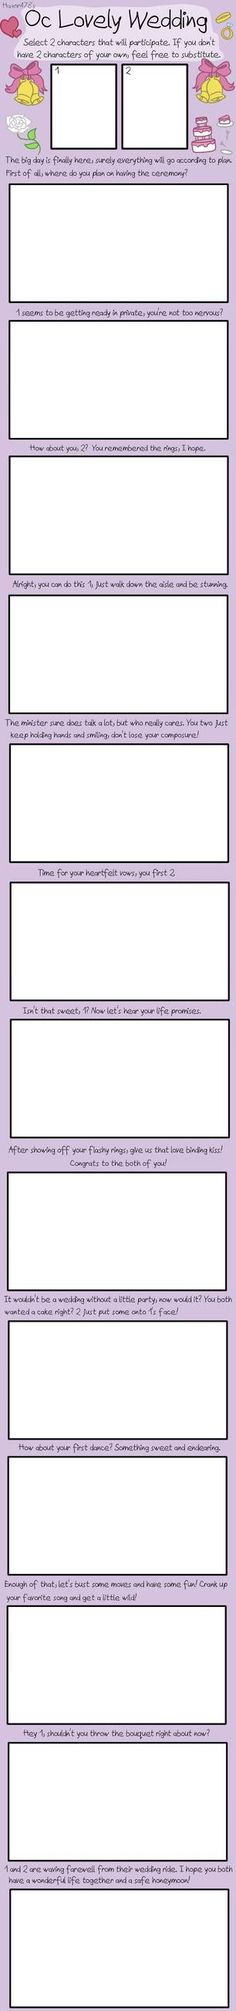 Have another hand-made meme Rules: Don't claim you made it Include the blank meme in your description Link it back here so I can see (even though. Drawing Meme, Ship Drawing, Drawing Prompt, 30 Day Drawing Challenge, Art Style Challenge, Expression Challenge, Drawing Ideas List, Drawing Tips, Oc Drawings